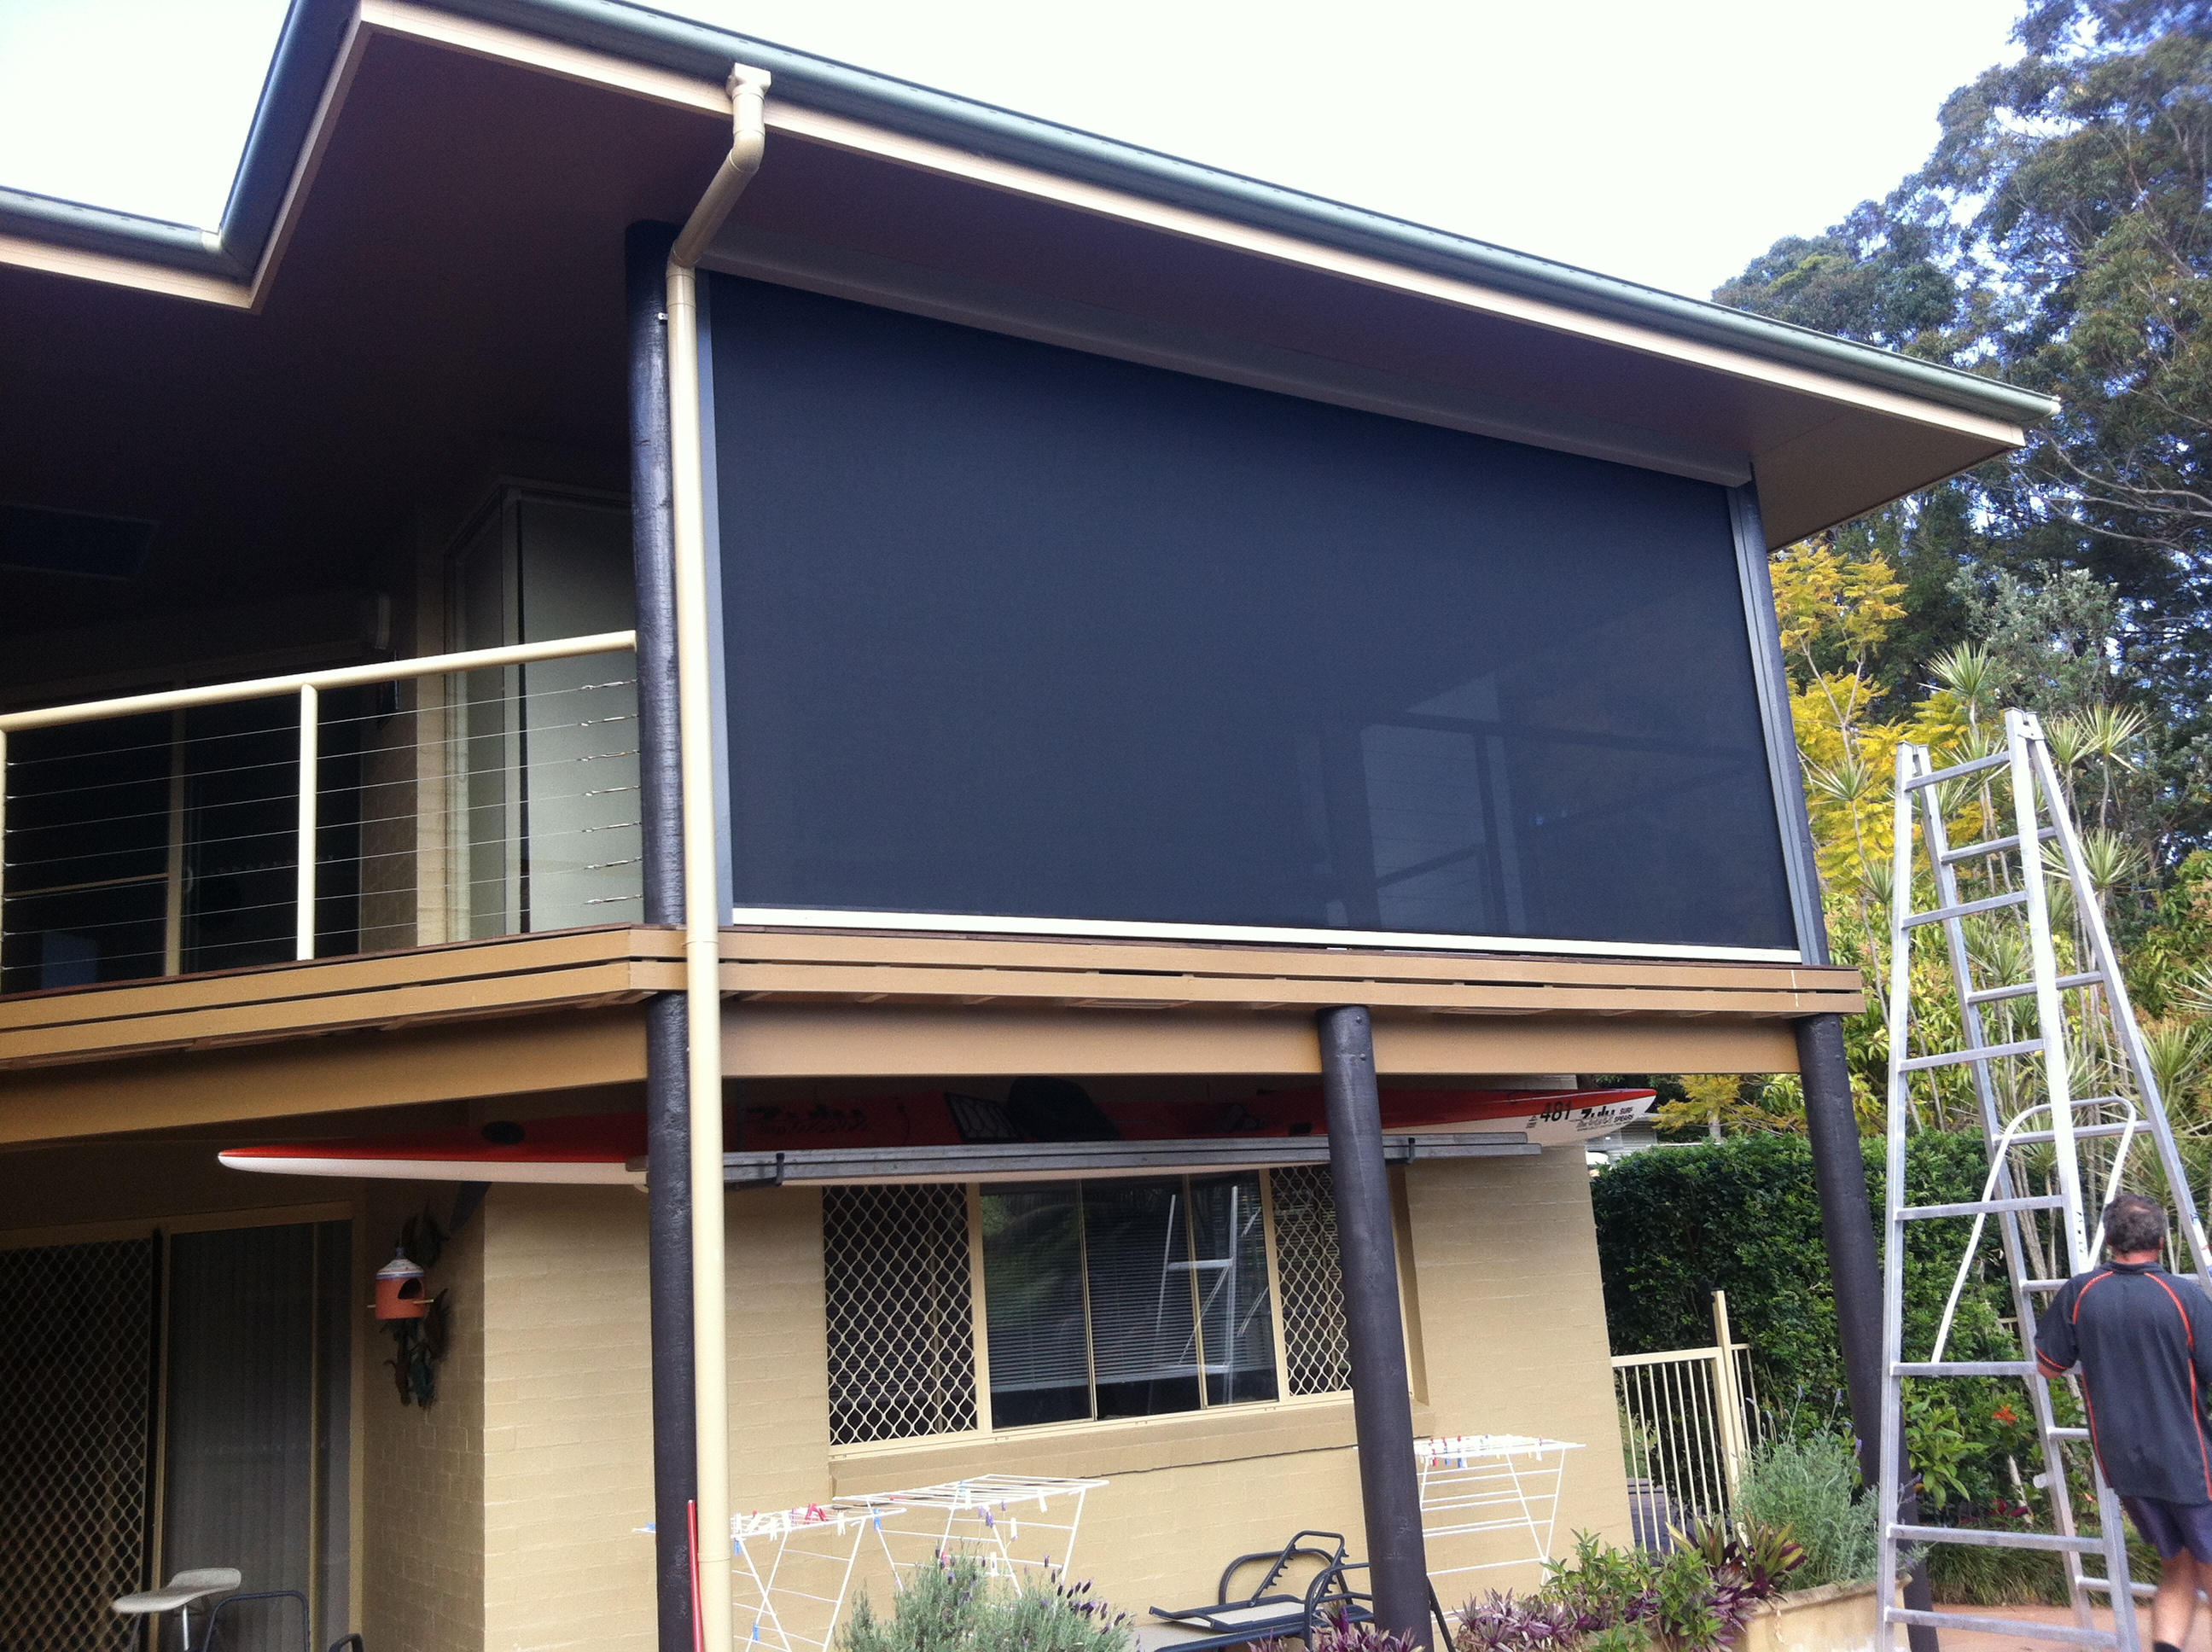 ideas panels for in decor systems enclosure screened kits with make and your home outdoor screen patio deck porch design